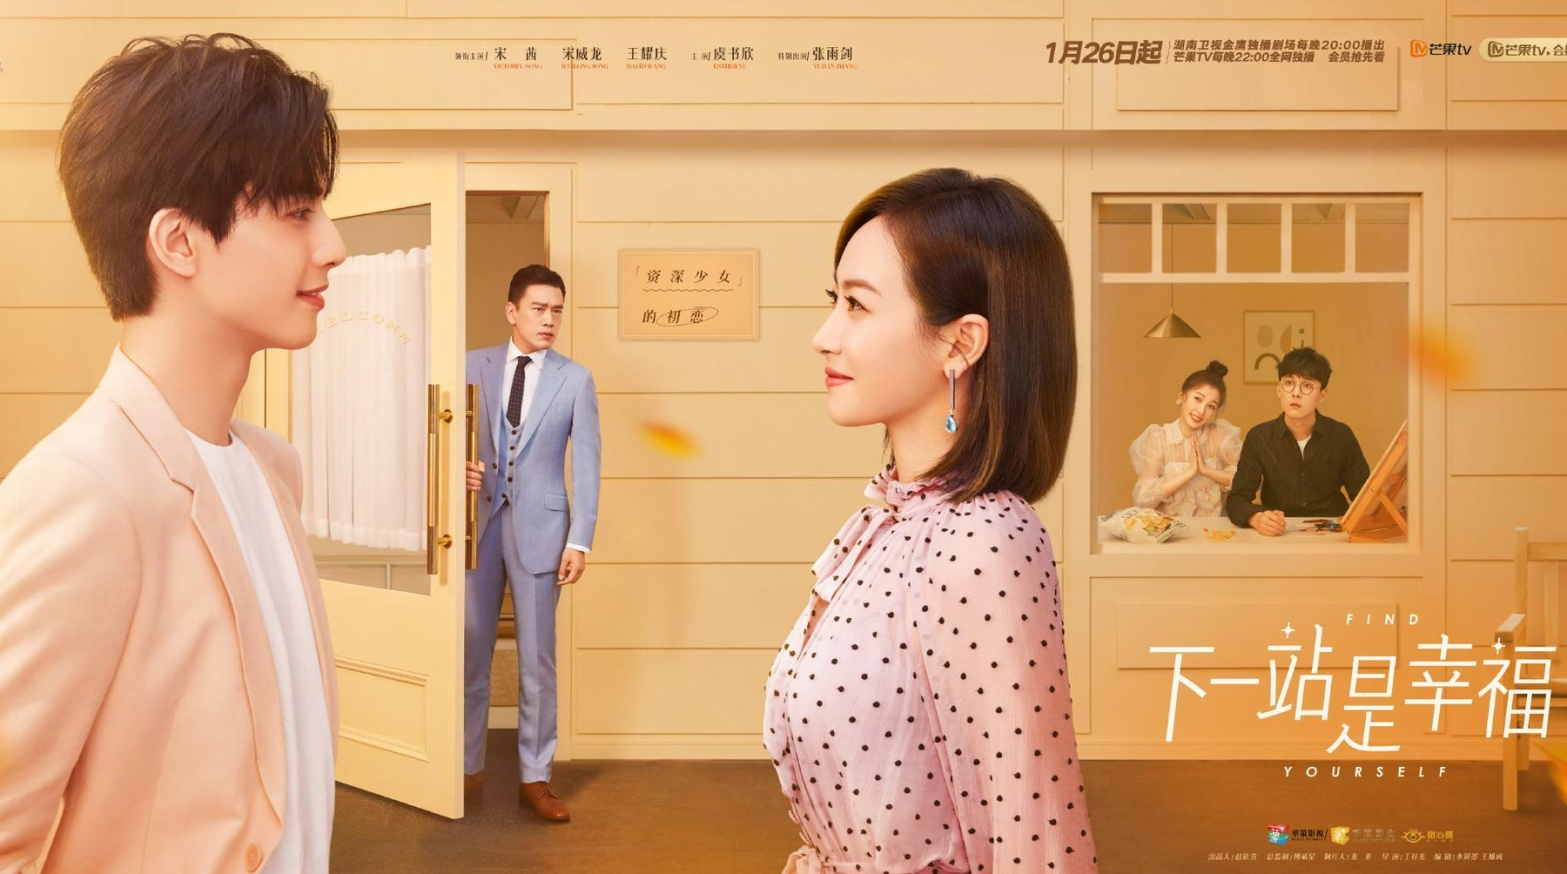 Find yourself, cdrama poster